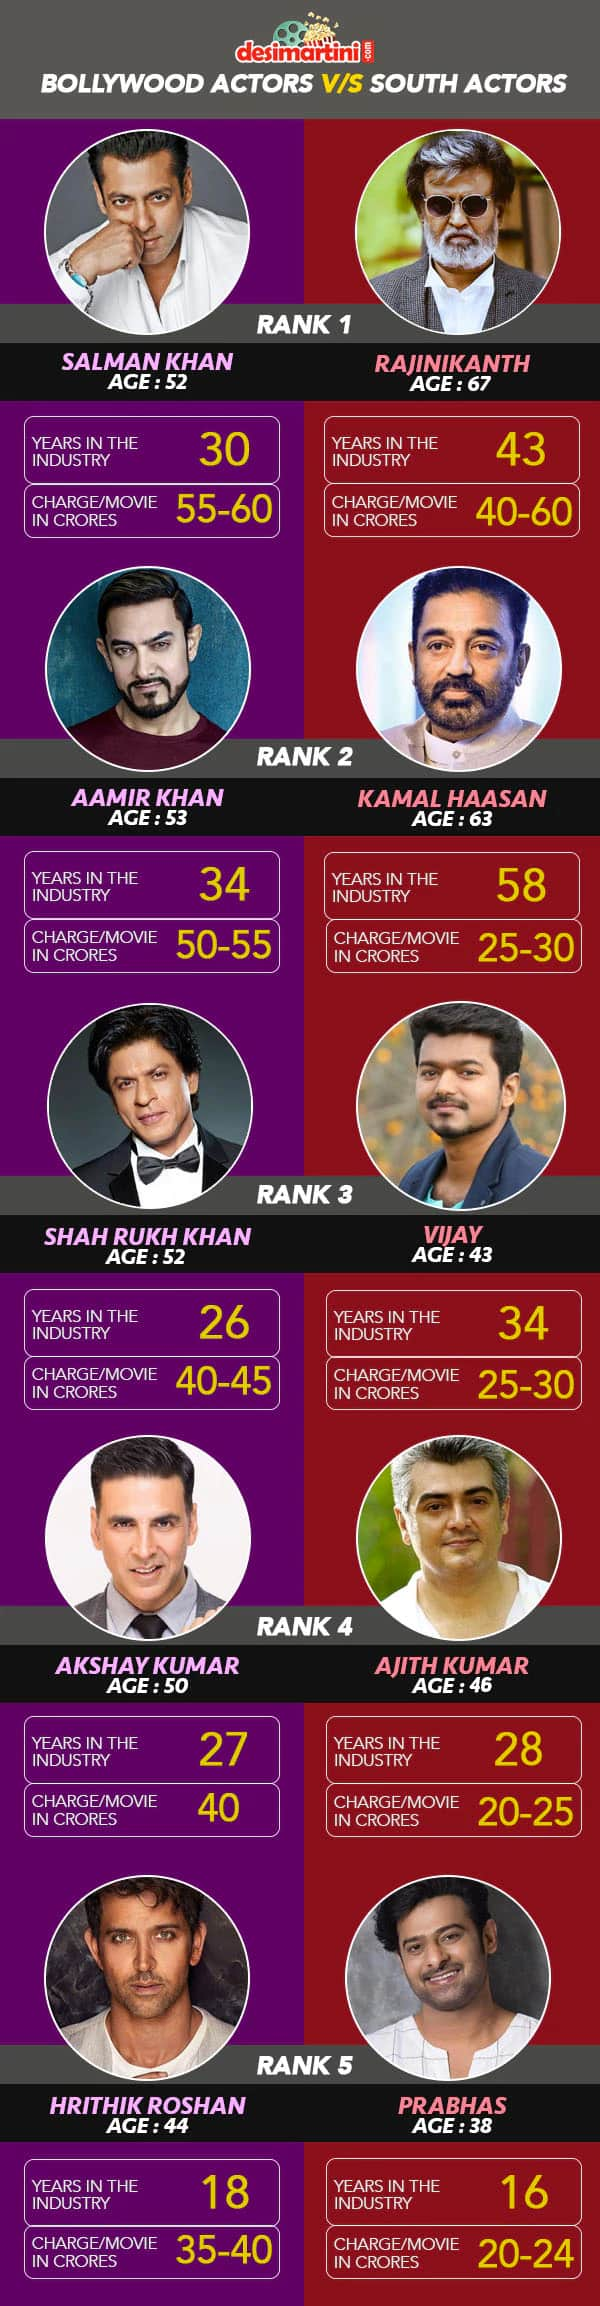 Here Is A Pictorial Comparison Between Top Actors Of Bollywood And The South